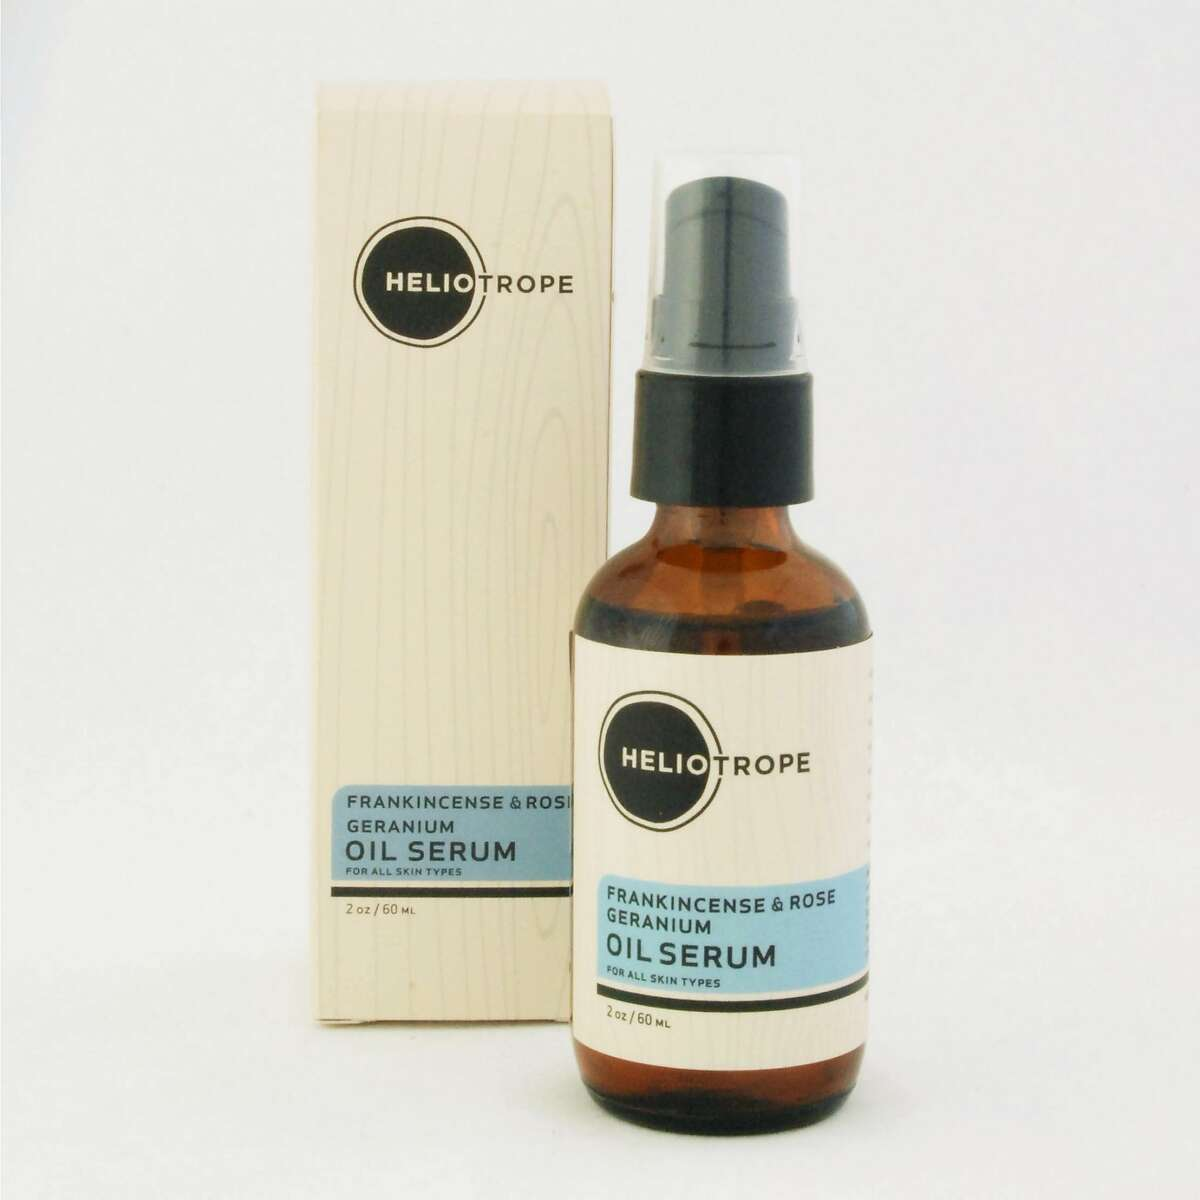 With face oils still the rage, San Francisco's Heliotrope has a Frankincense &Rose Geranium Oil to soothe irritated skin (especially post-beach) without clogging pores. Omega-3 and -6 fatty restore the face, while its rejuvenating scent restores the mind. ($49, Acacia, 415 Valencia St., SF).